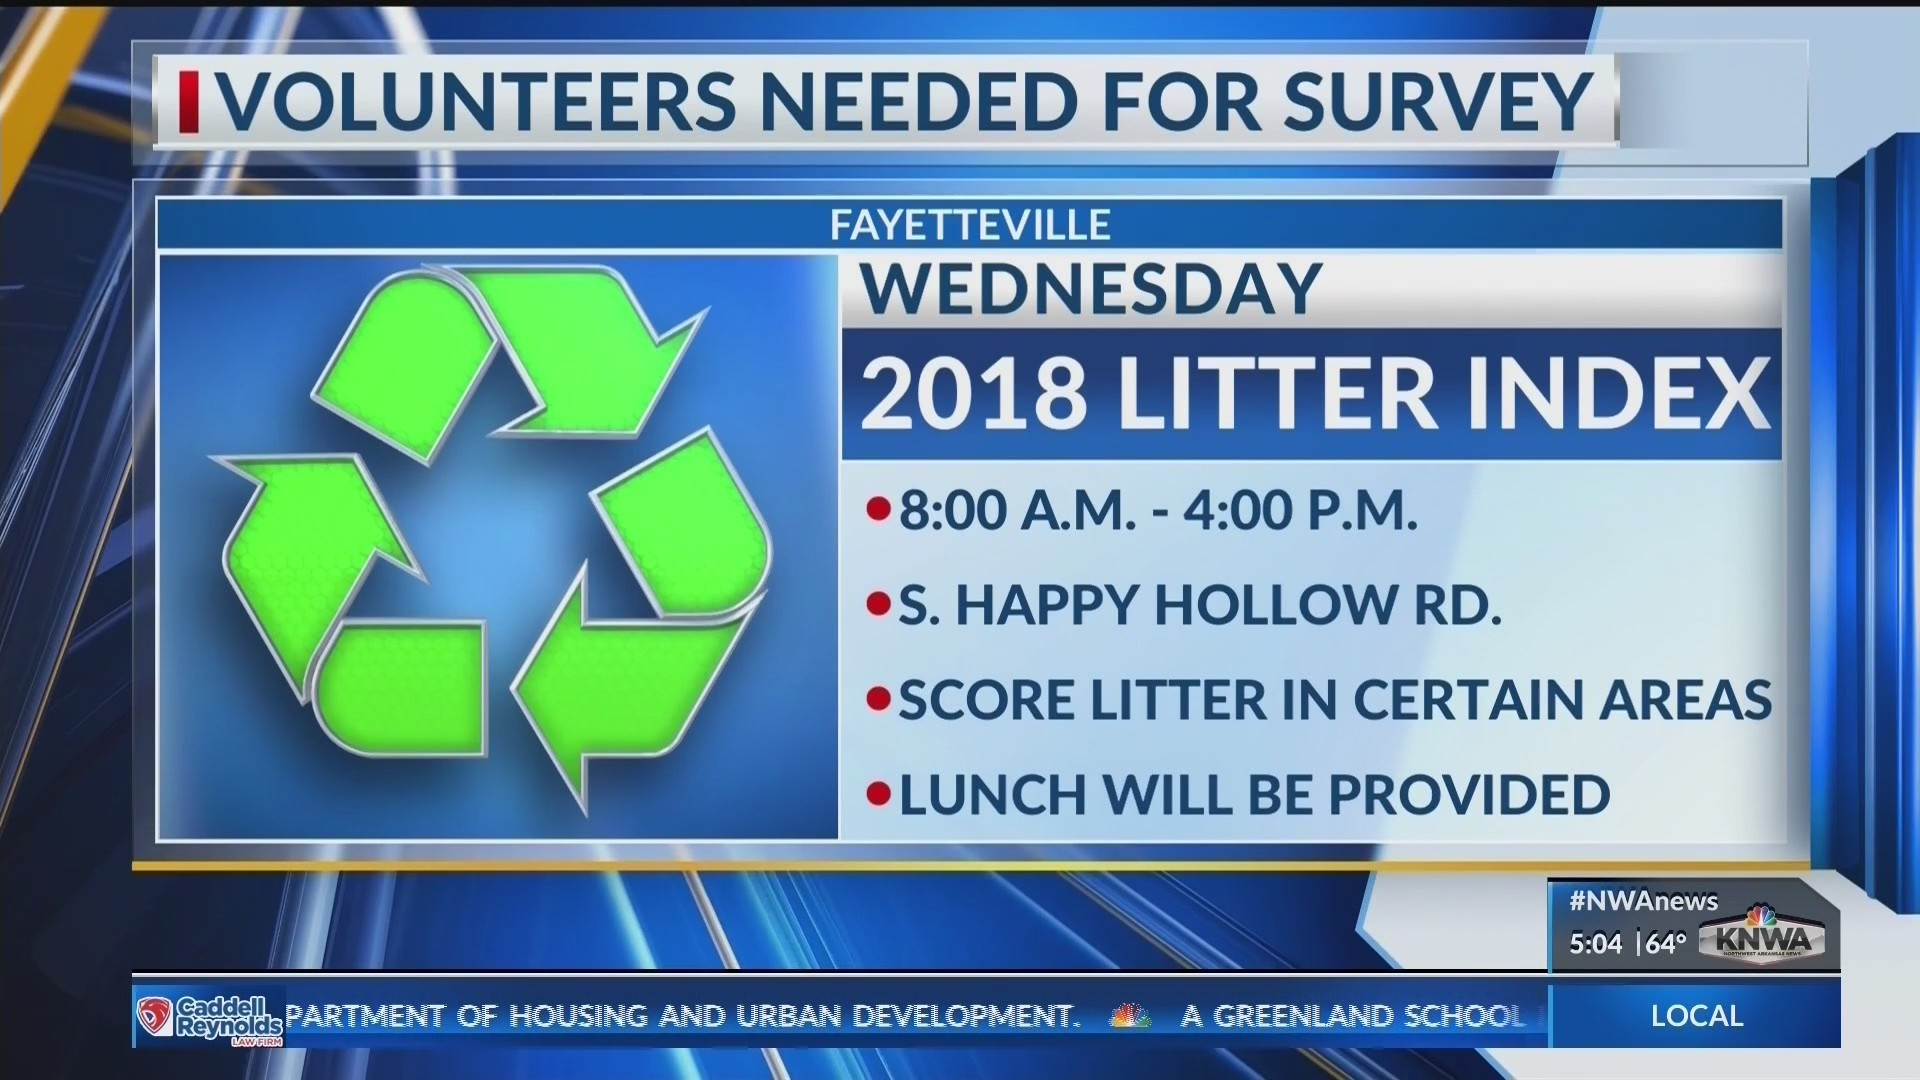 City_Looks_for_Volunteers_to_Keep_Fayett_0_20180725130027